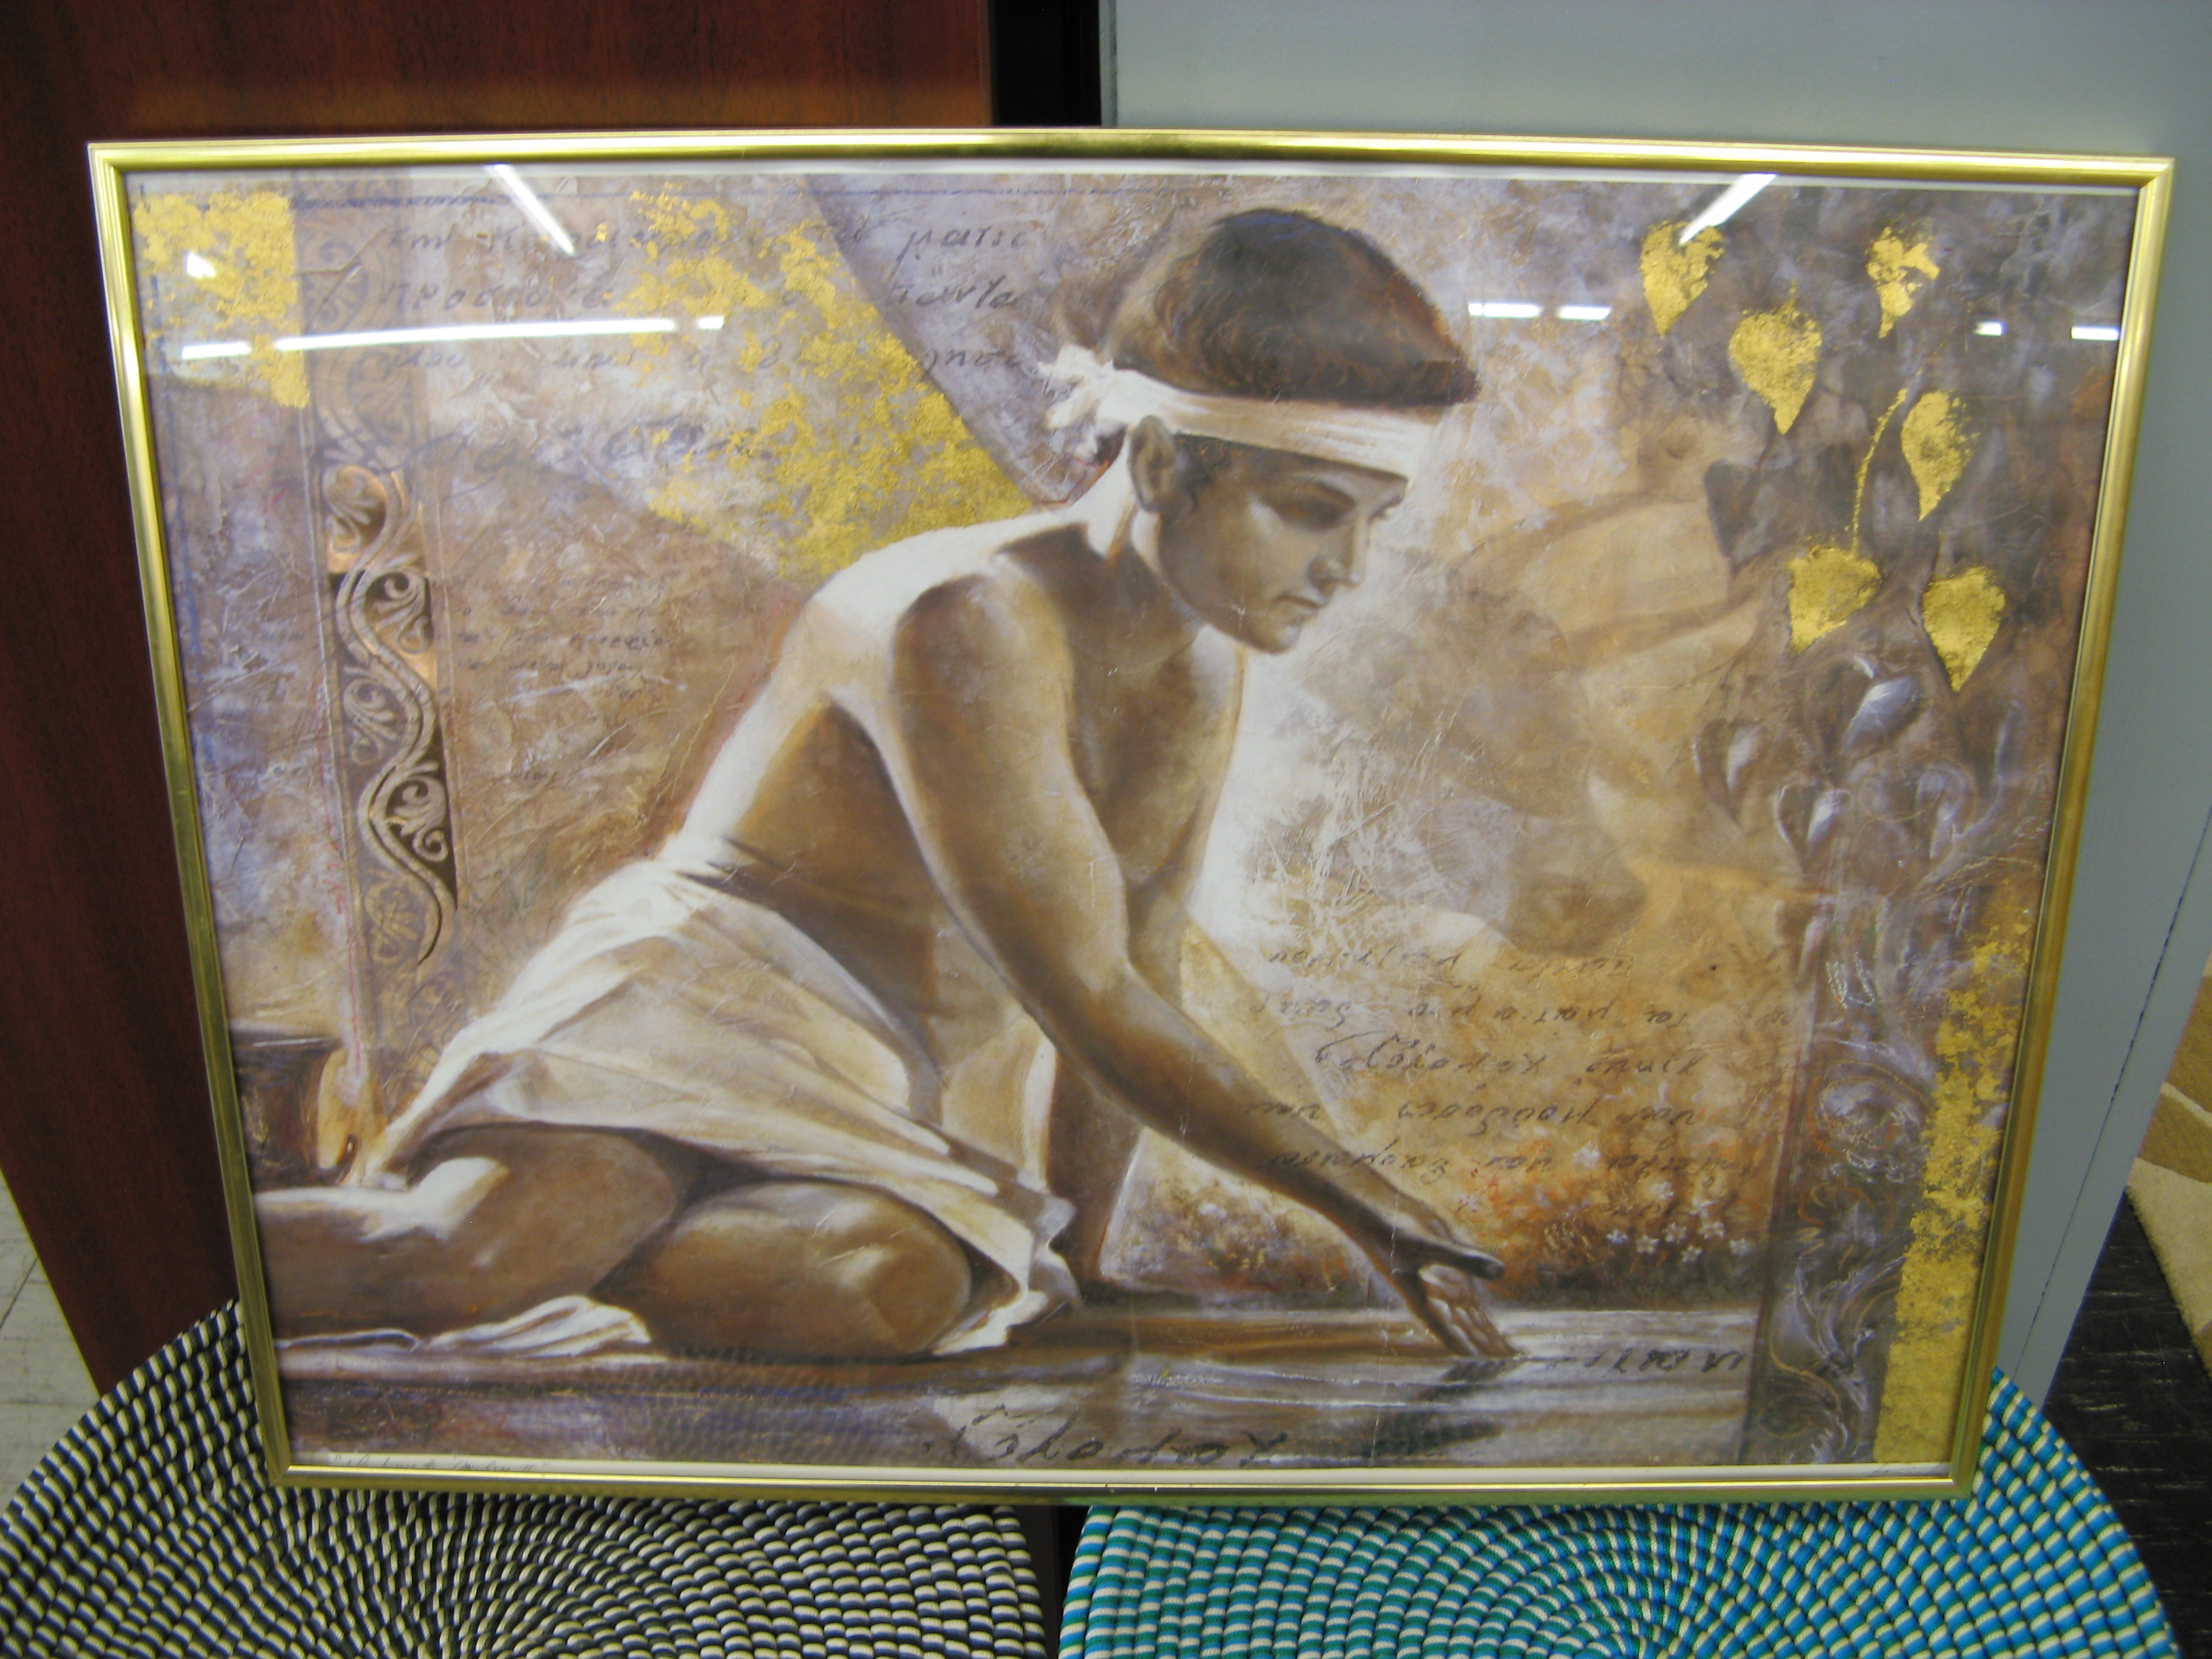 Wall Art of Boy in Ancient Setting, Gold Frame